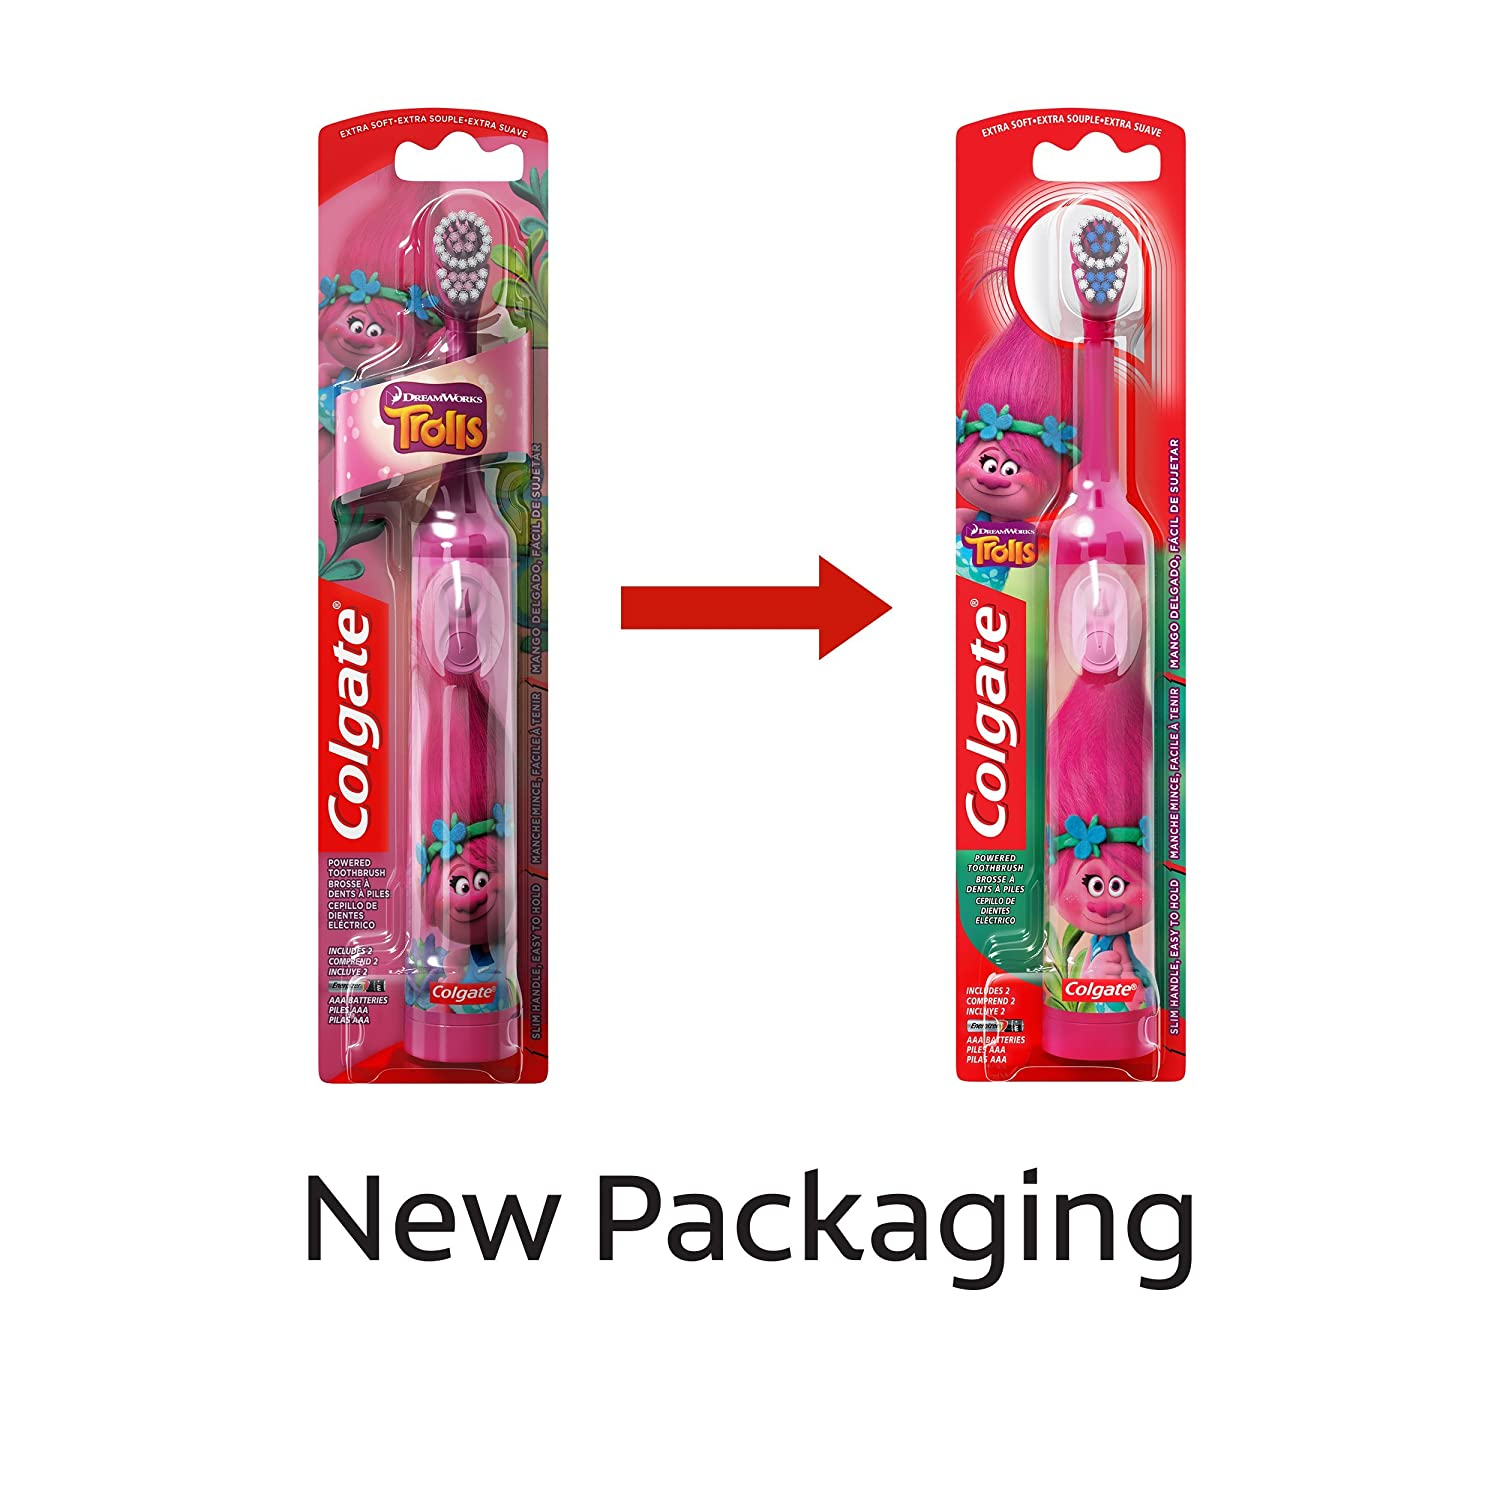 Amazon.com: Colgate Kids battery powered toothbrush, peppa pig (Pack of 12): Beauty